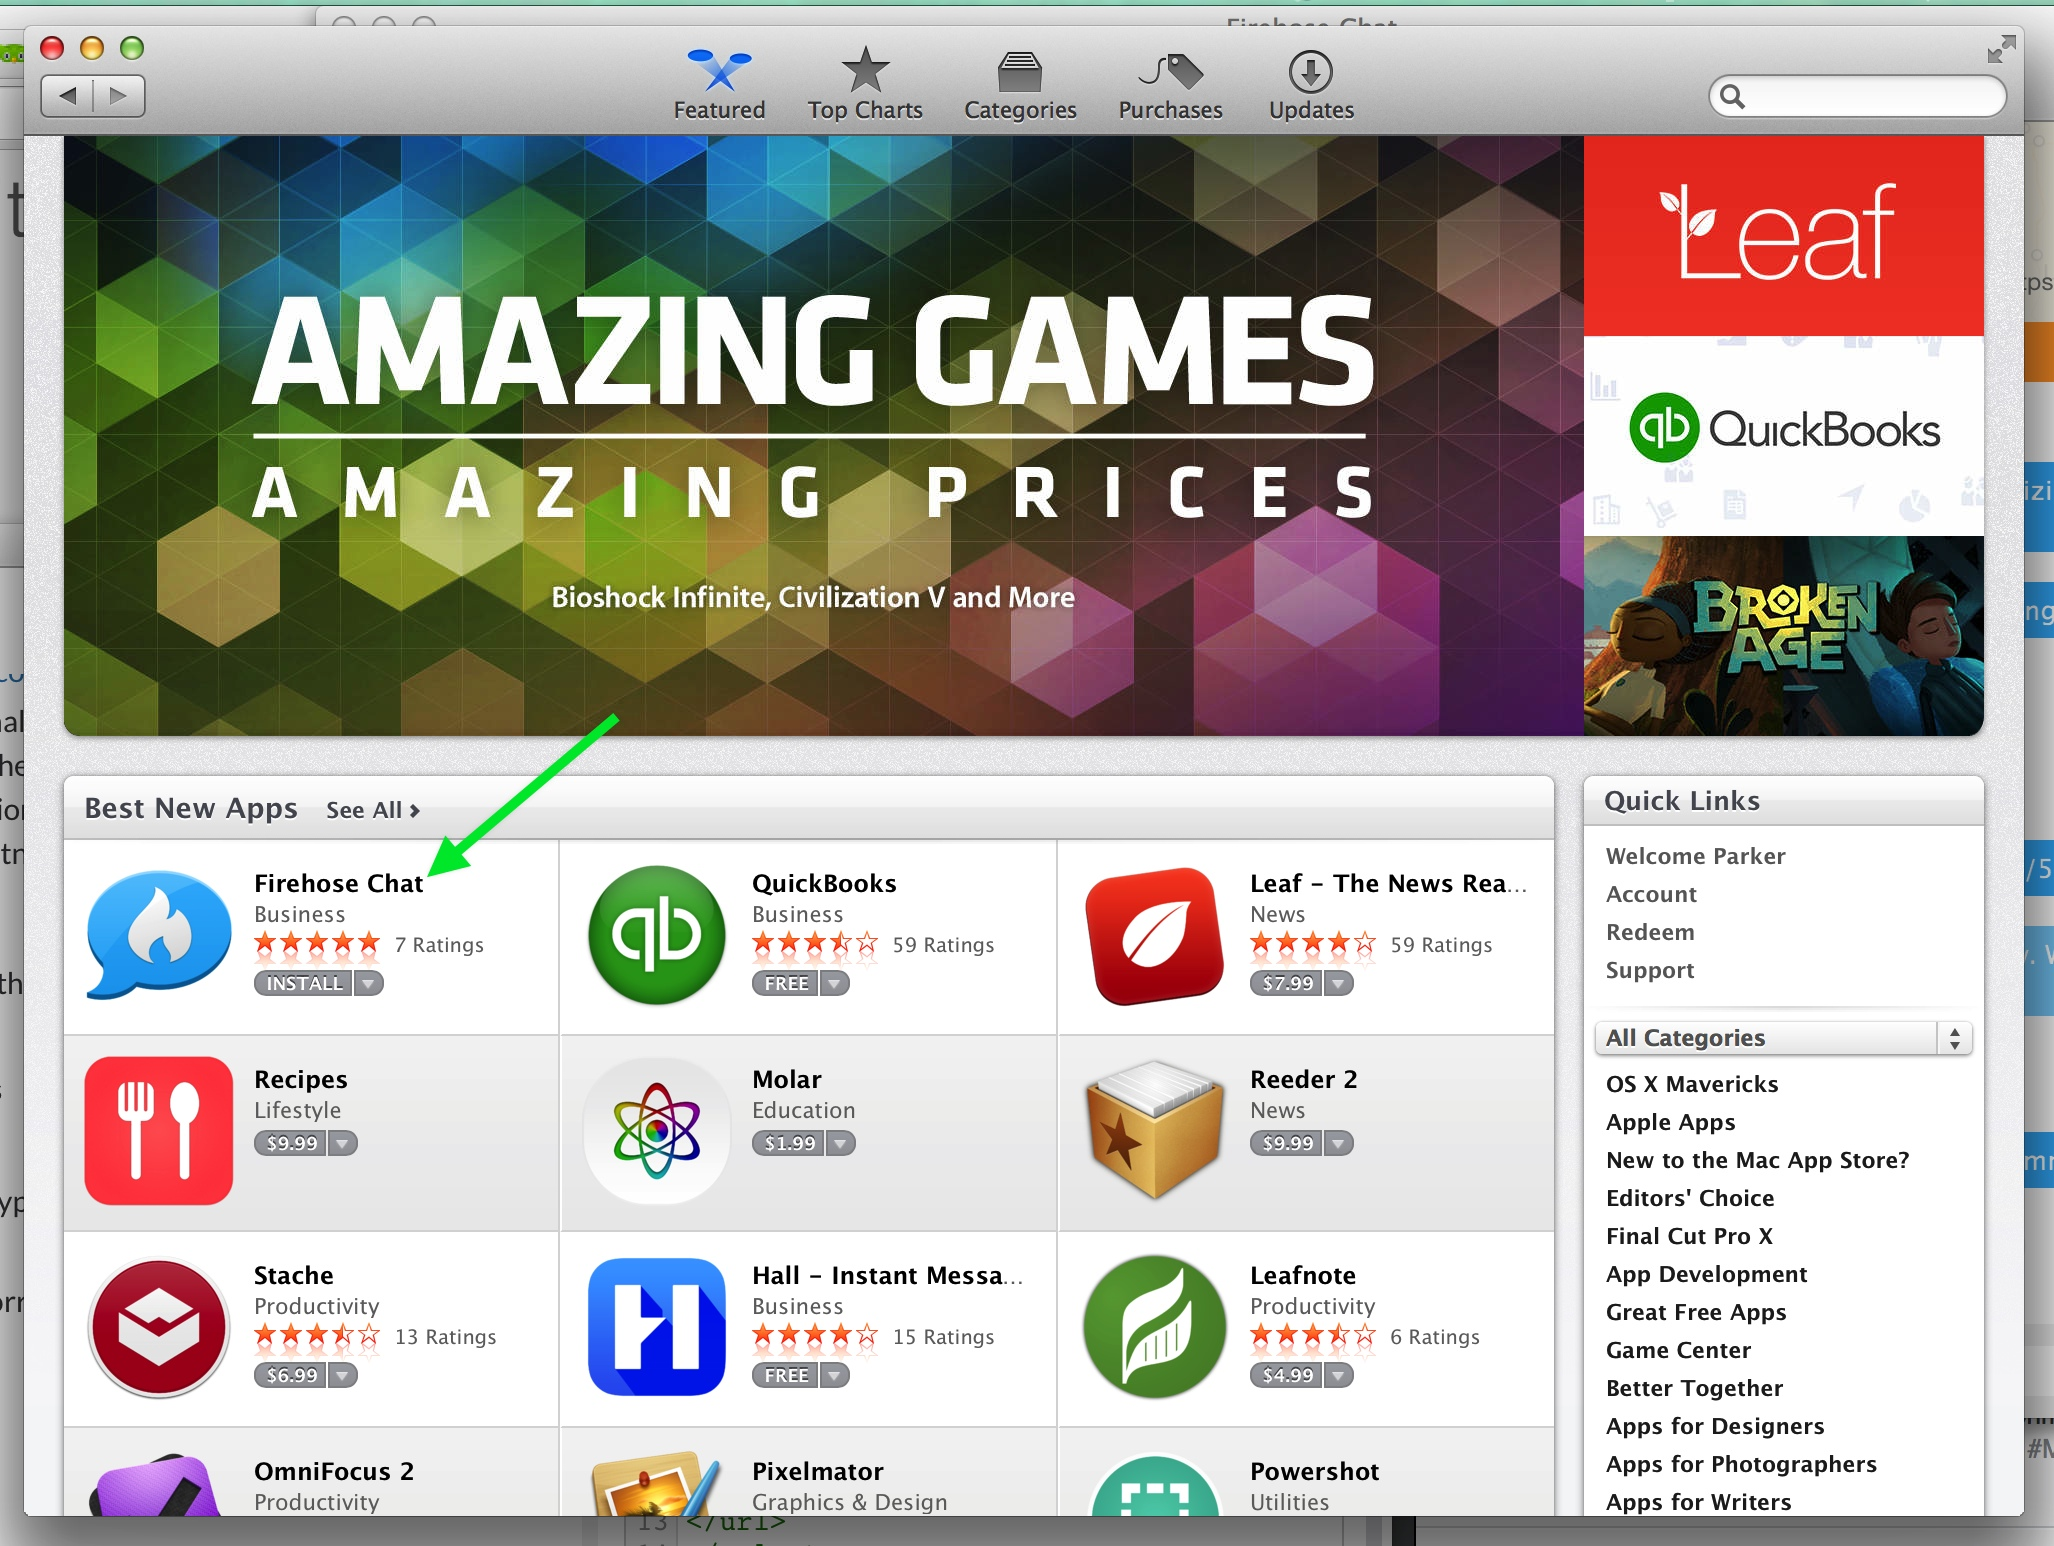 5 of our apps have been featured on the home page of the App Store